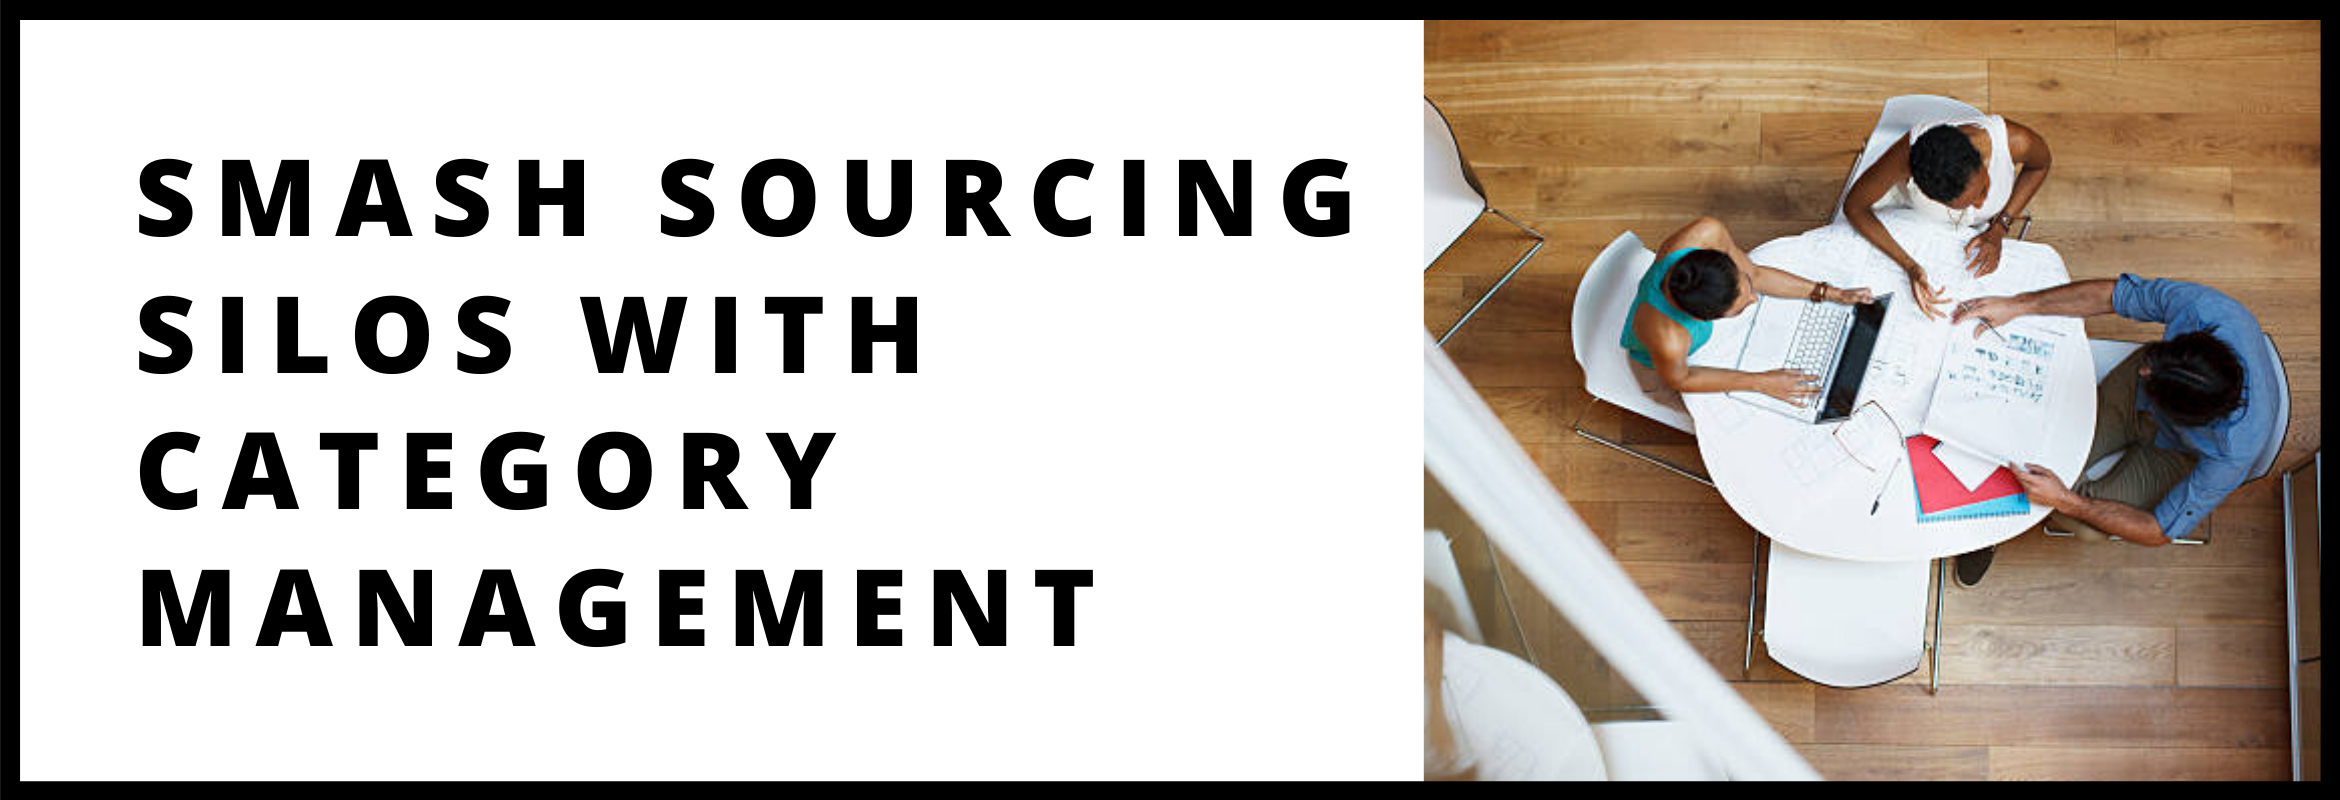 Smash Sourcing Silos with Category Management